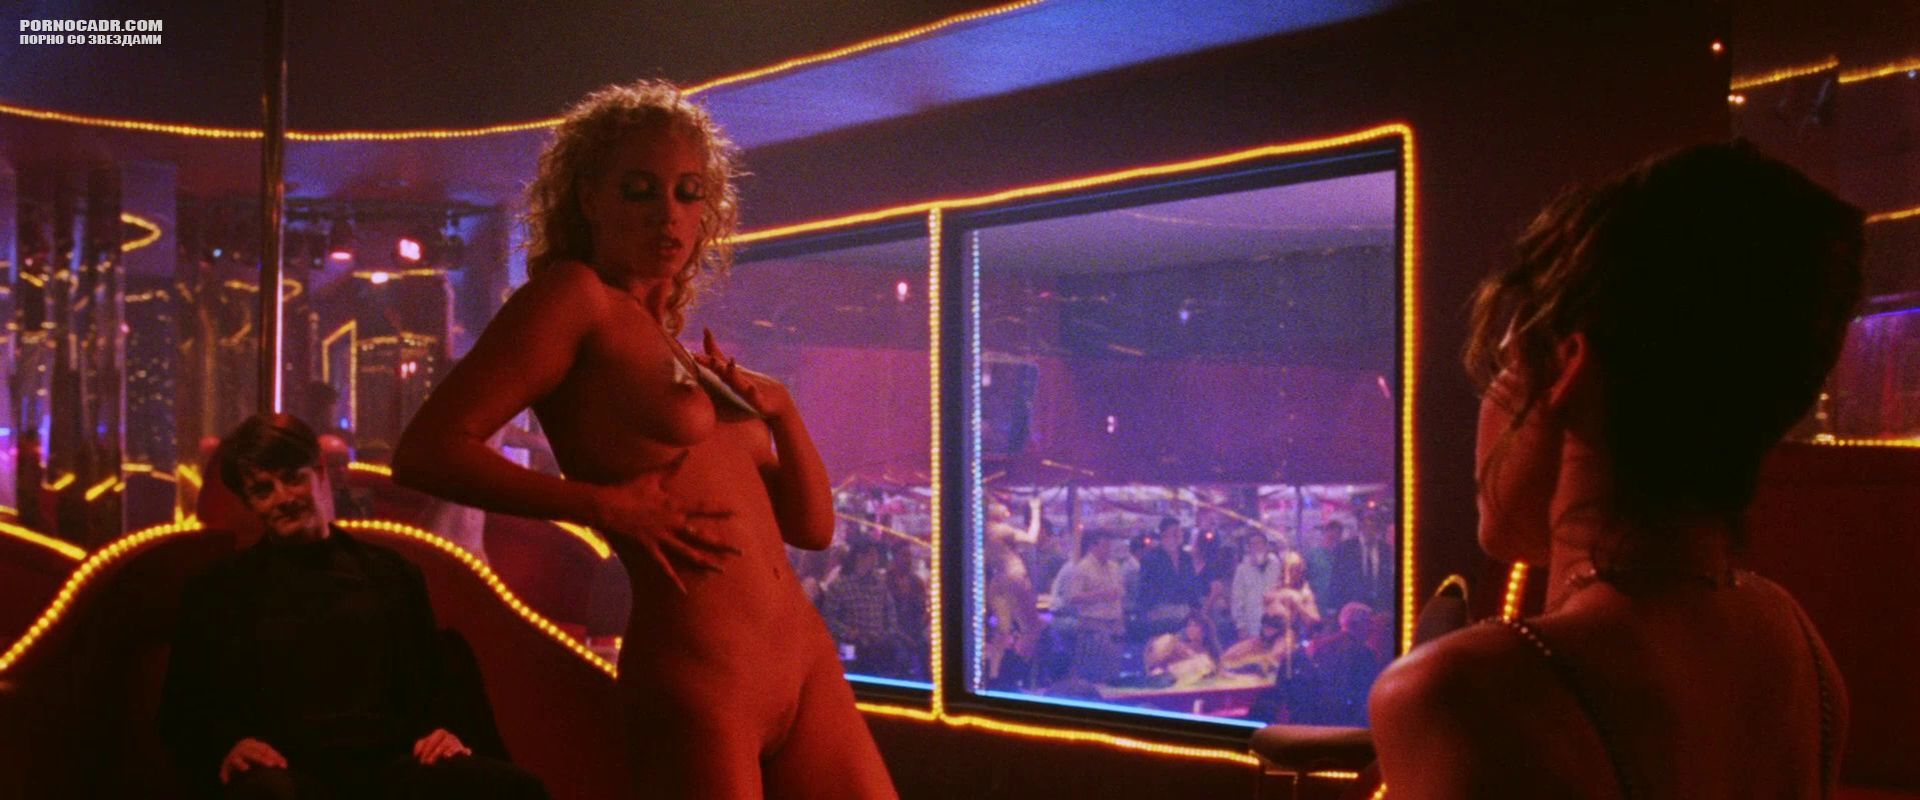 Showgirls elizabeth berkley pool nude scenes